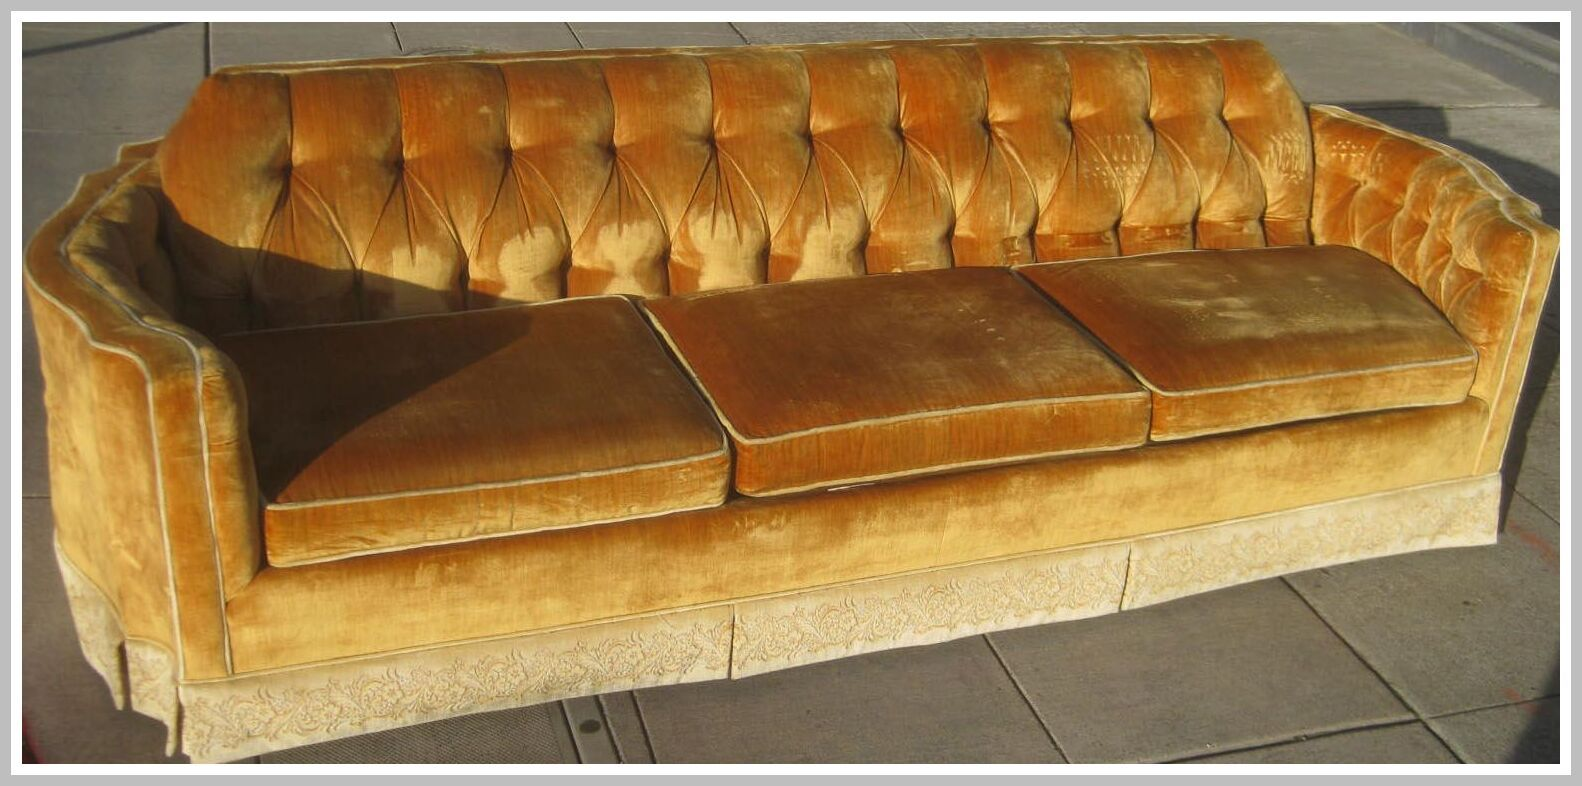 126 Reference Of Brown Leather Couch Turning Yellow In 2020 Brown Leather Couch Velvet Couch Crushed Velvet Sofa